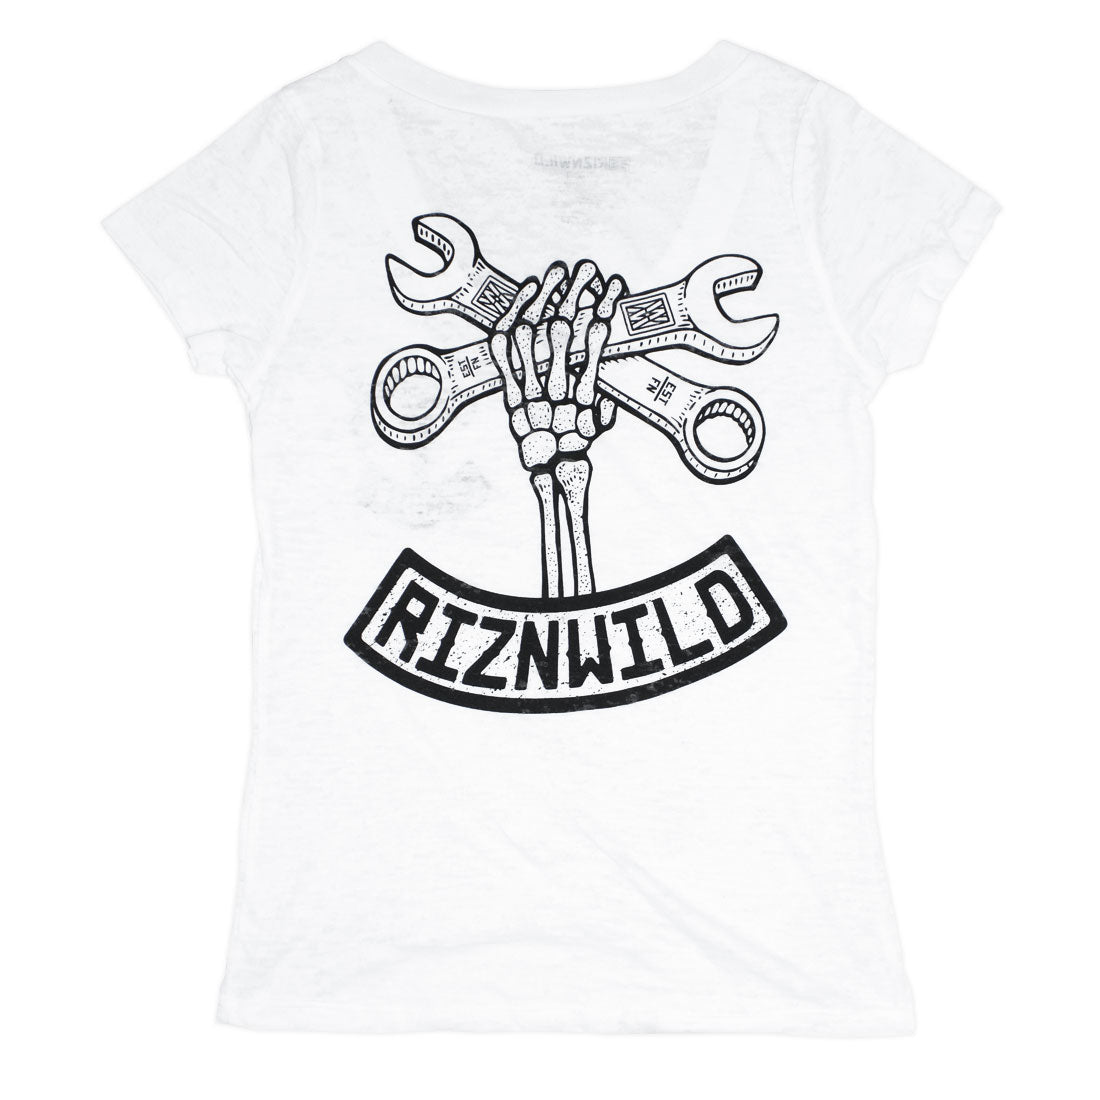 Wrench Twist Girls Burnout v-neck tee in white